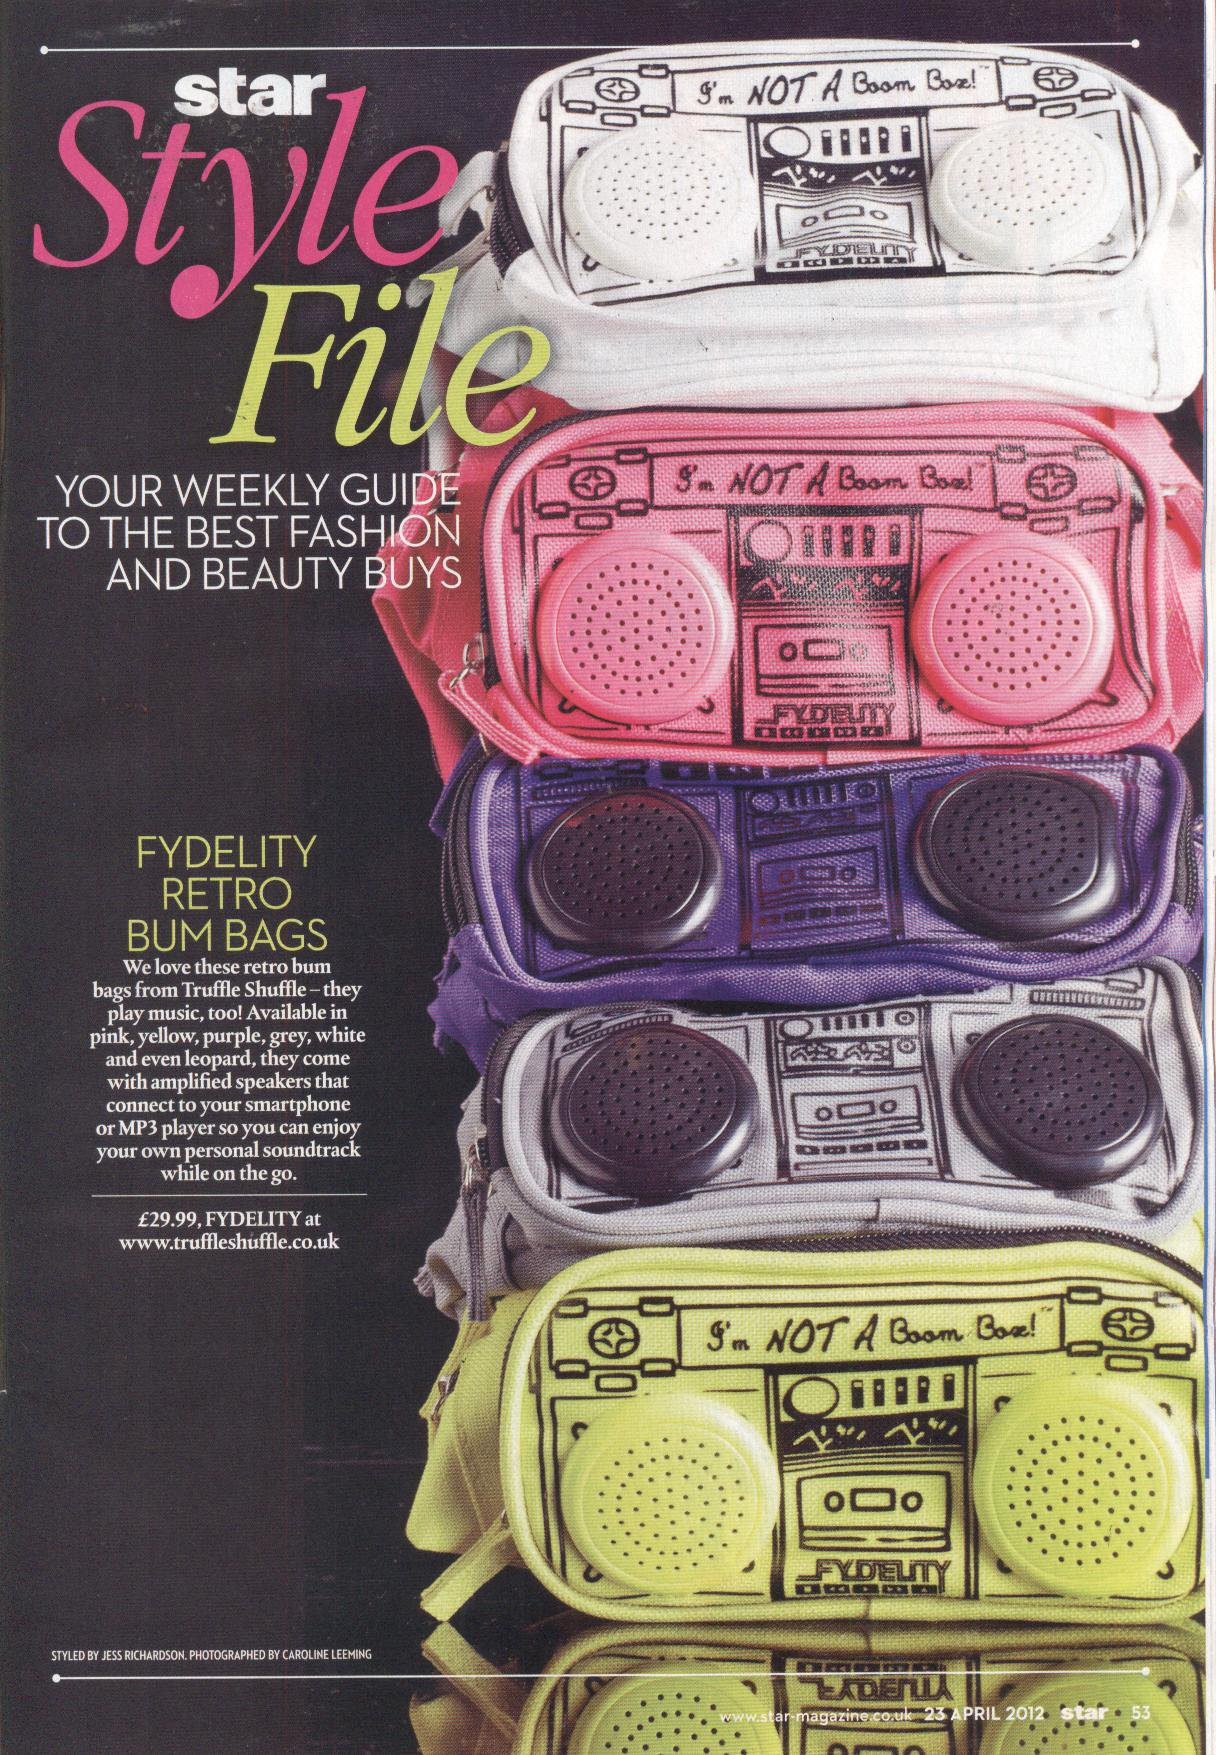 high fydelity Boombox bumbags as seen in Star Magazine from www.truffleshuffle.co.uk